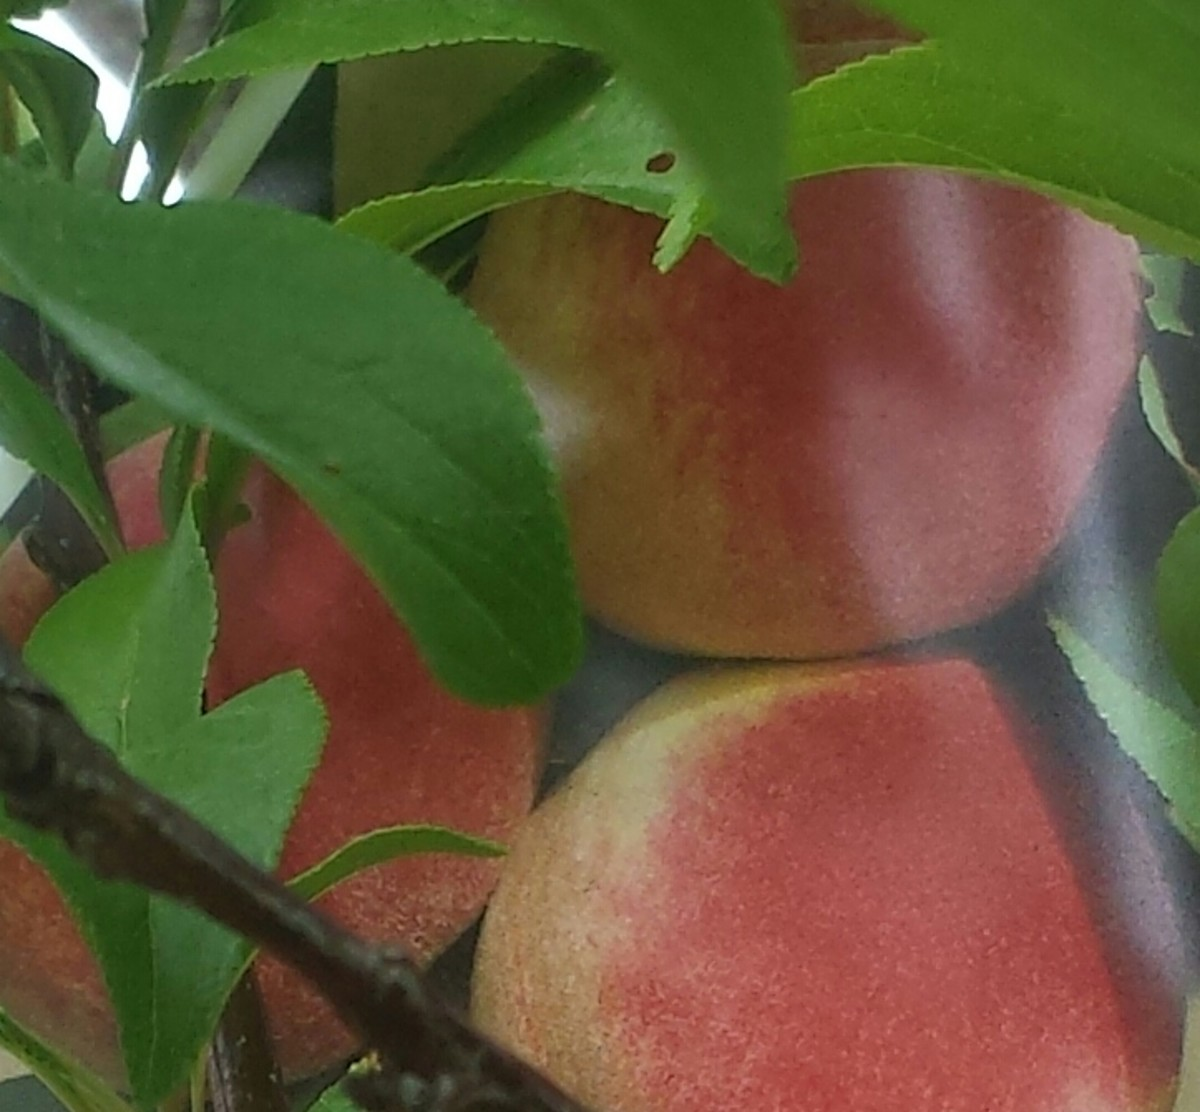 Fresh peaches are health and very sweet tasting